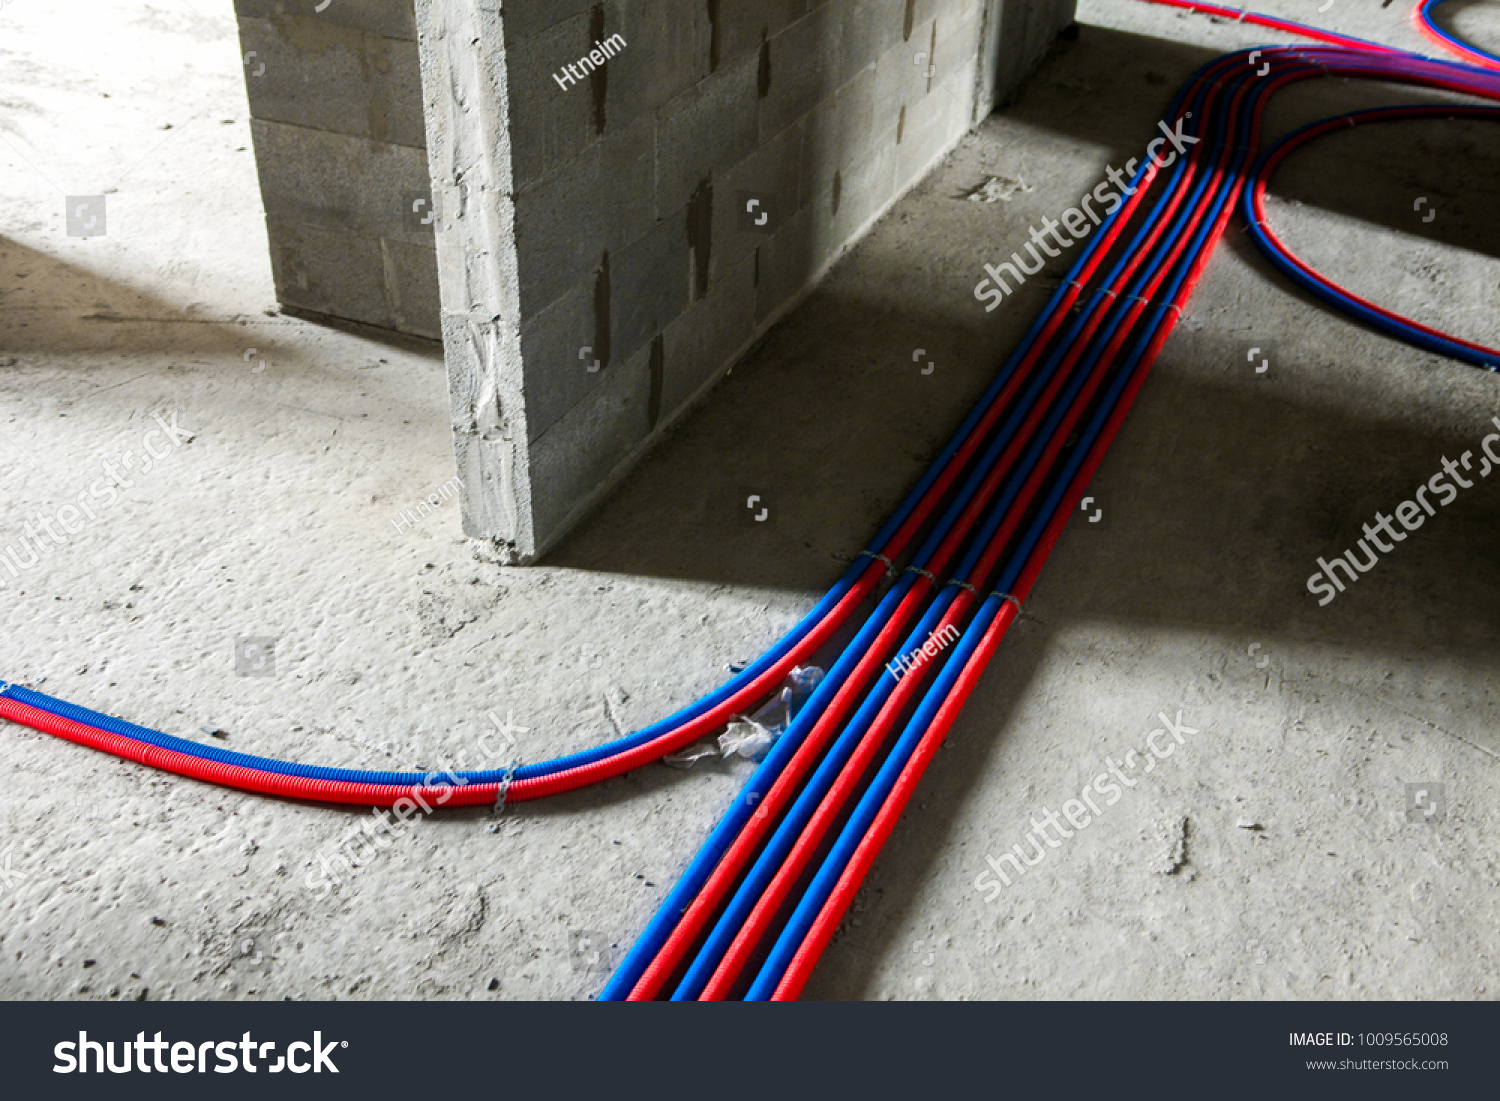 Pipes Heating System House Construction Site Stock Photo Edit Now Electrical Wiring In Cinder Block Walls Of At Floor Concrete Blocks